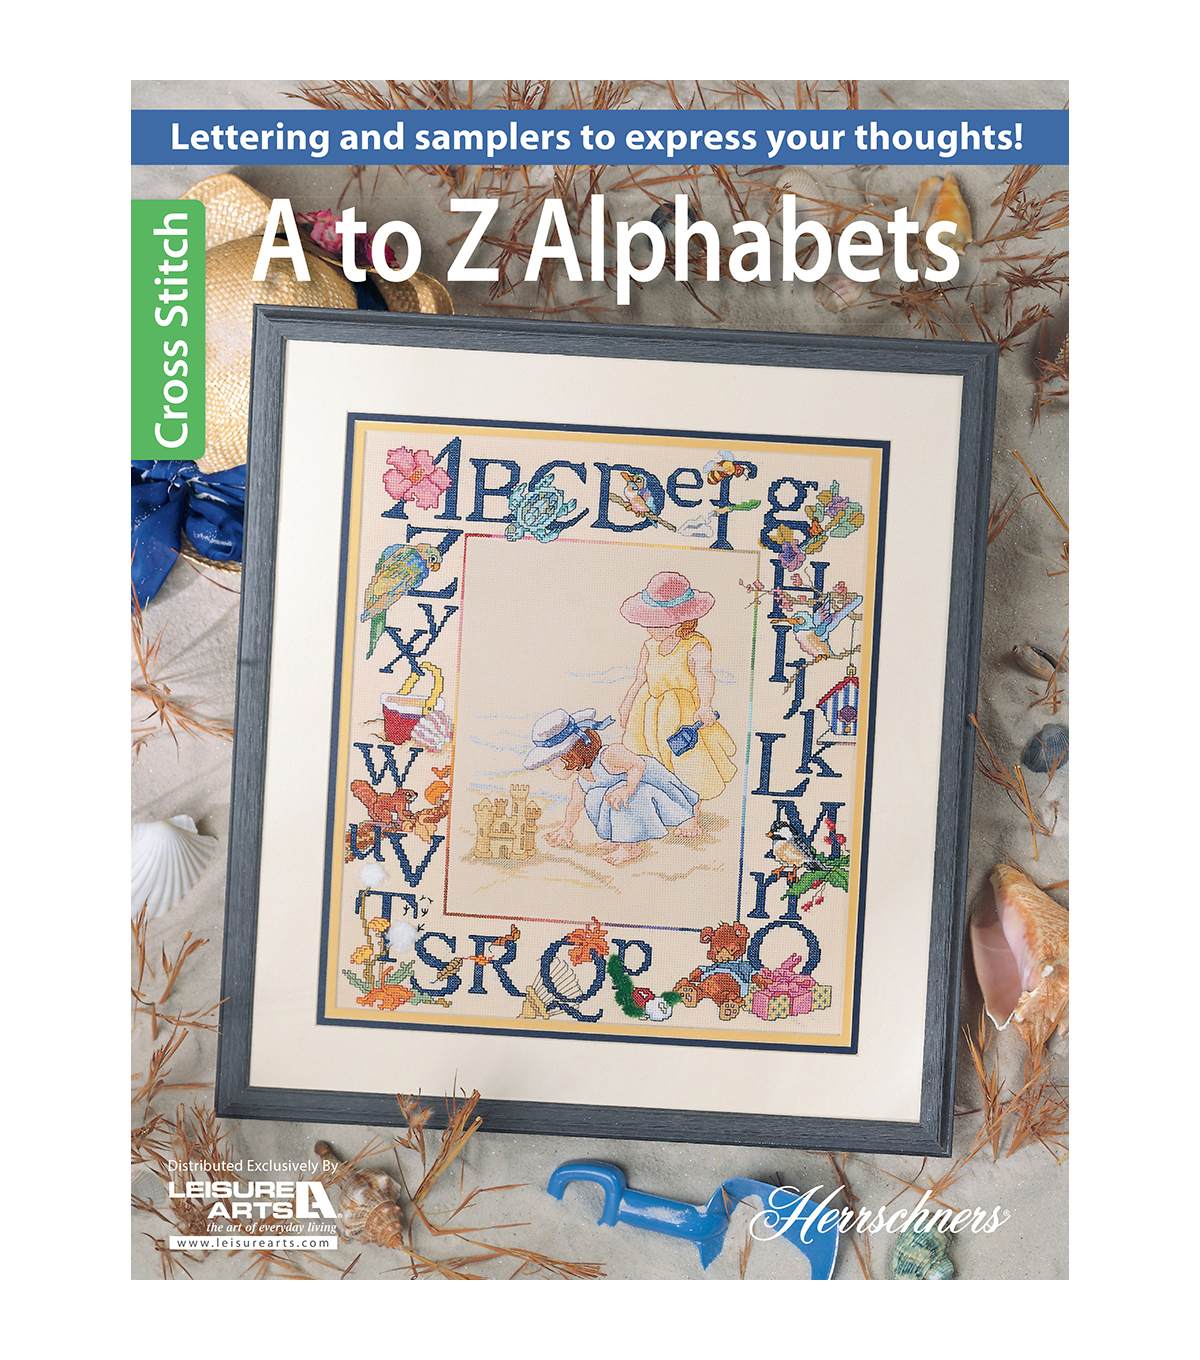 A To Z Alphabets